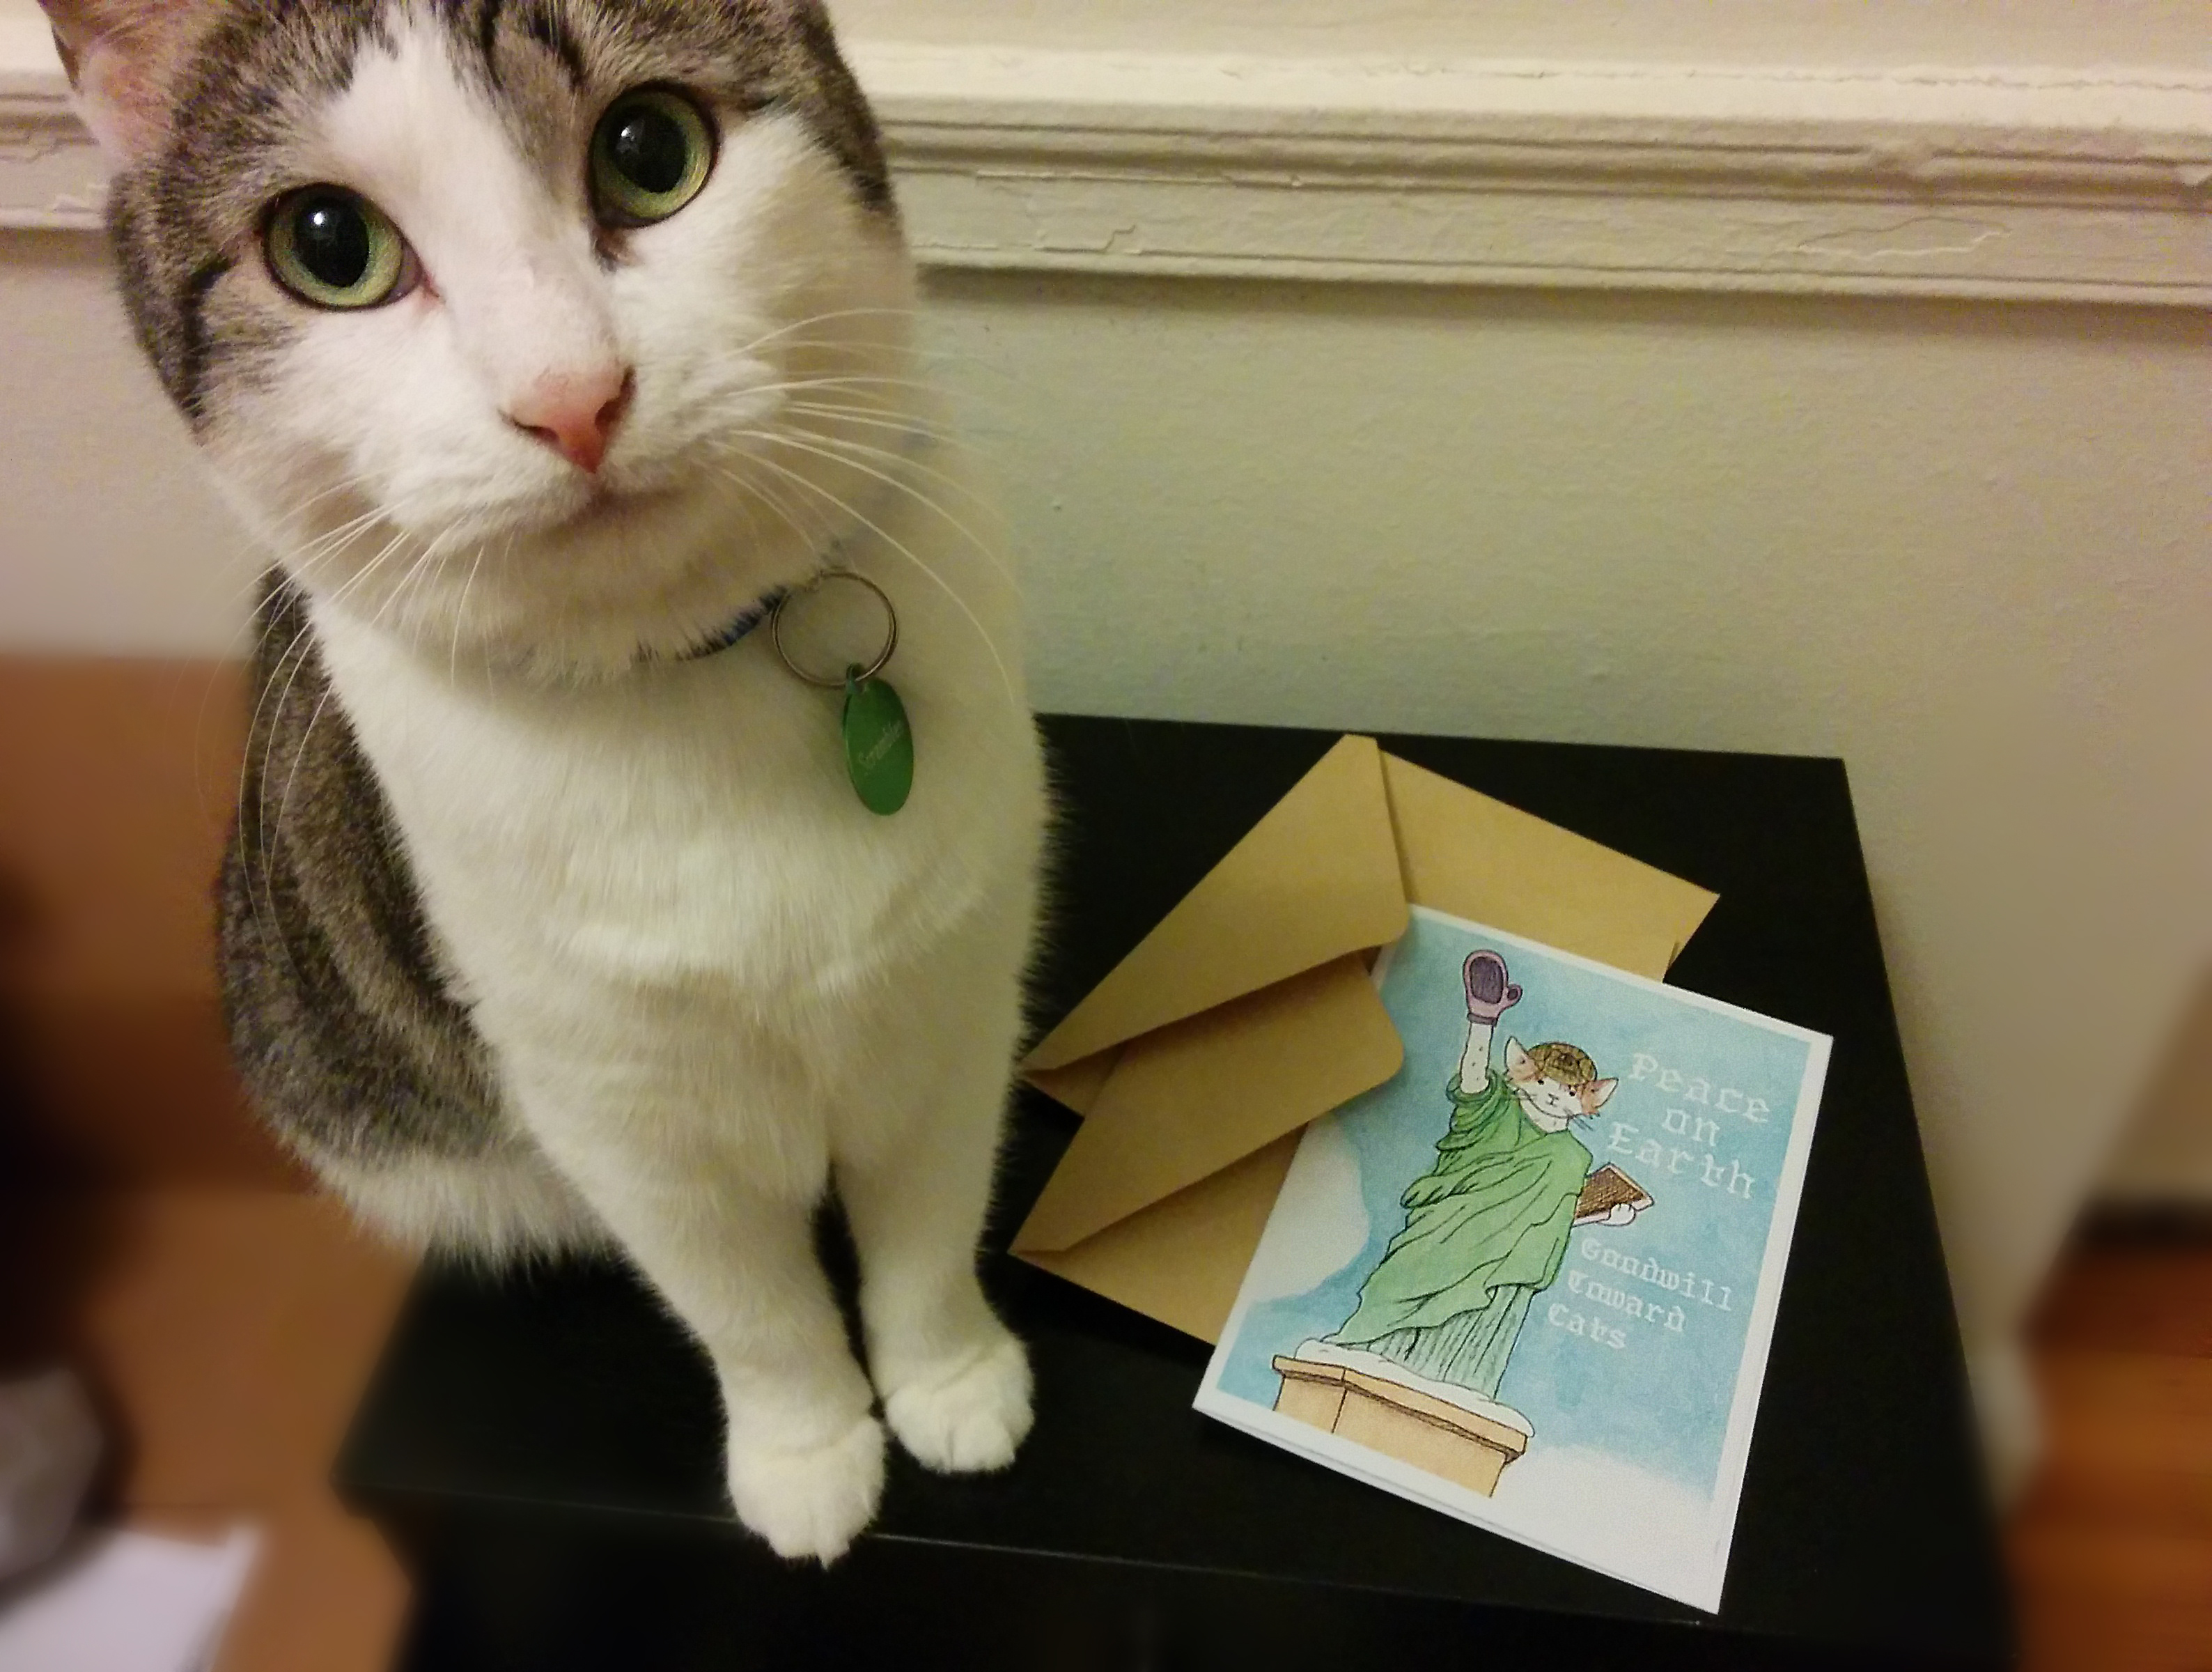 Inspector Scrambles poses with a card of her as the Statue of Liberty